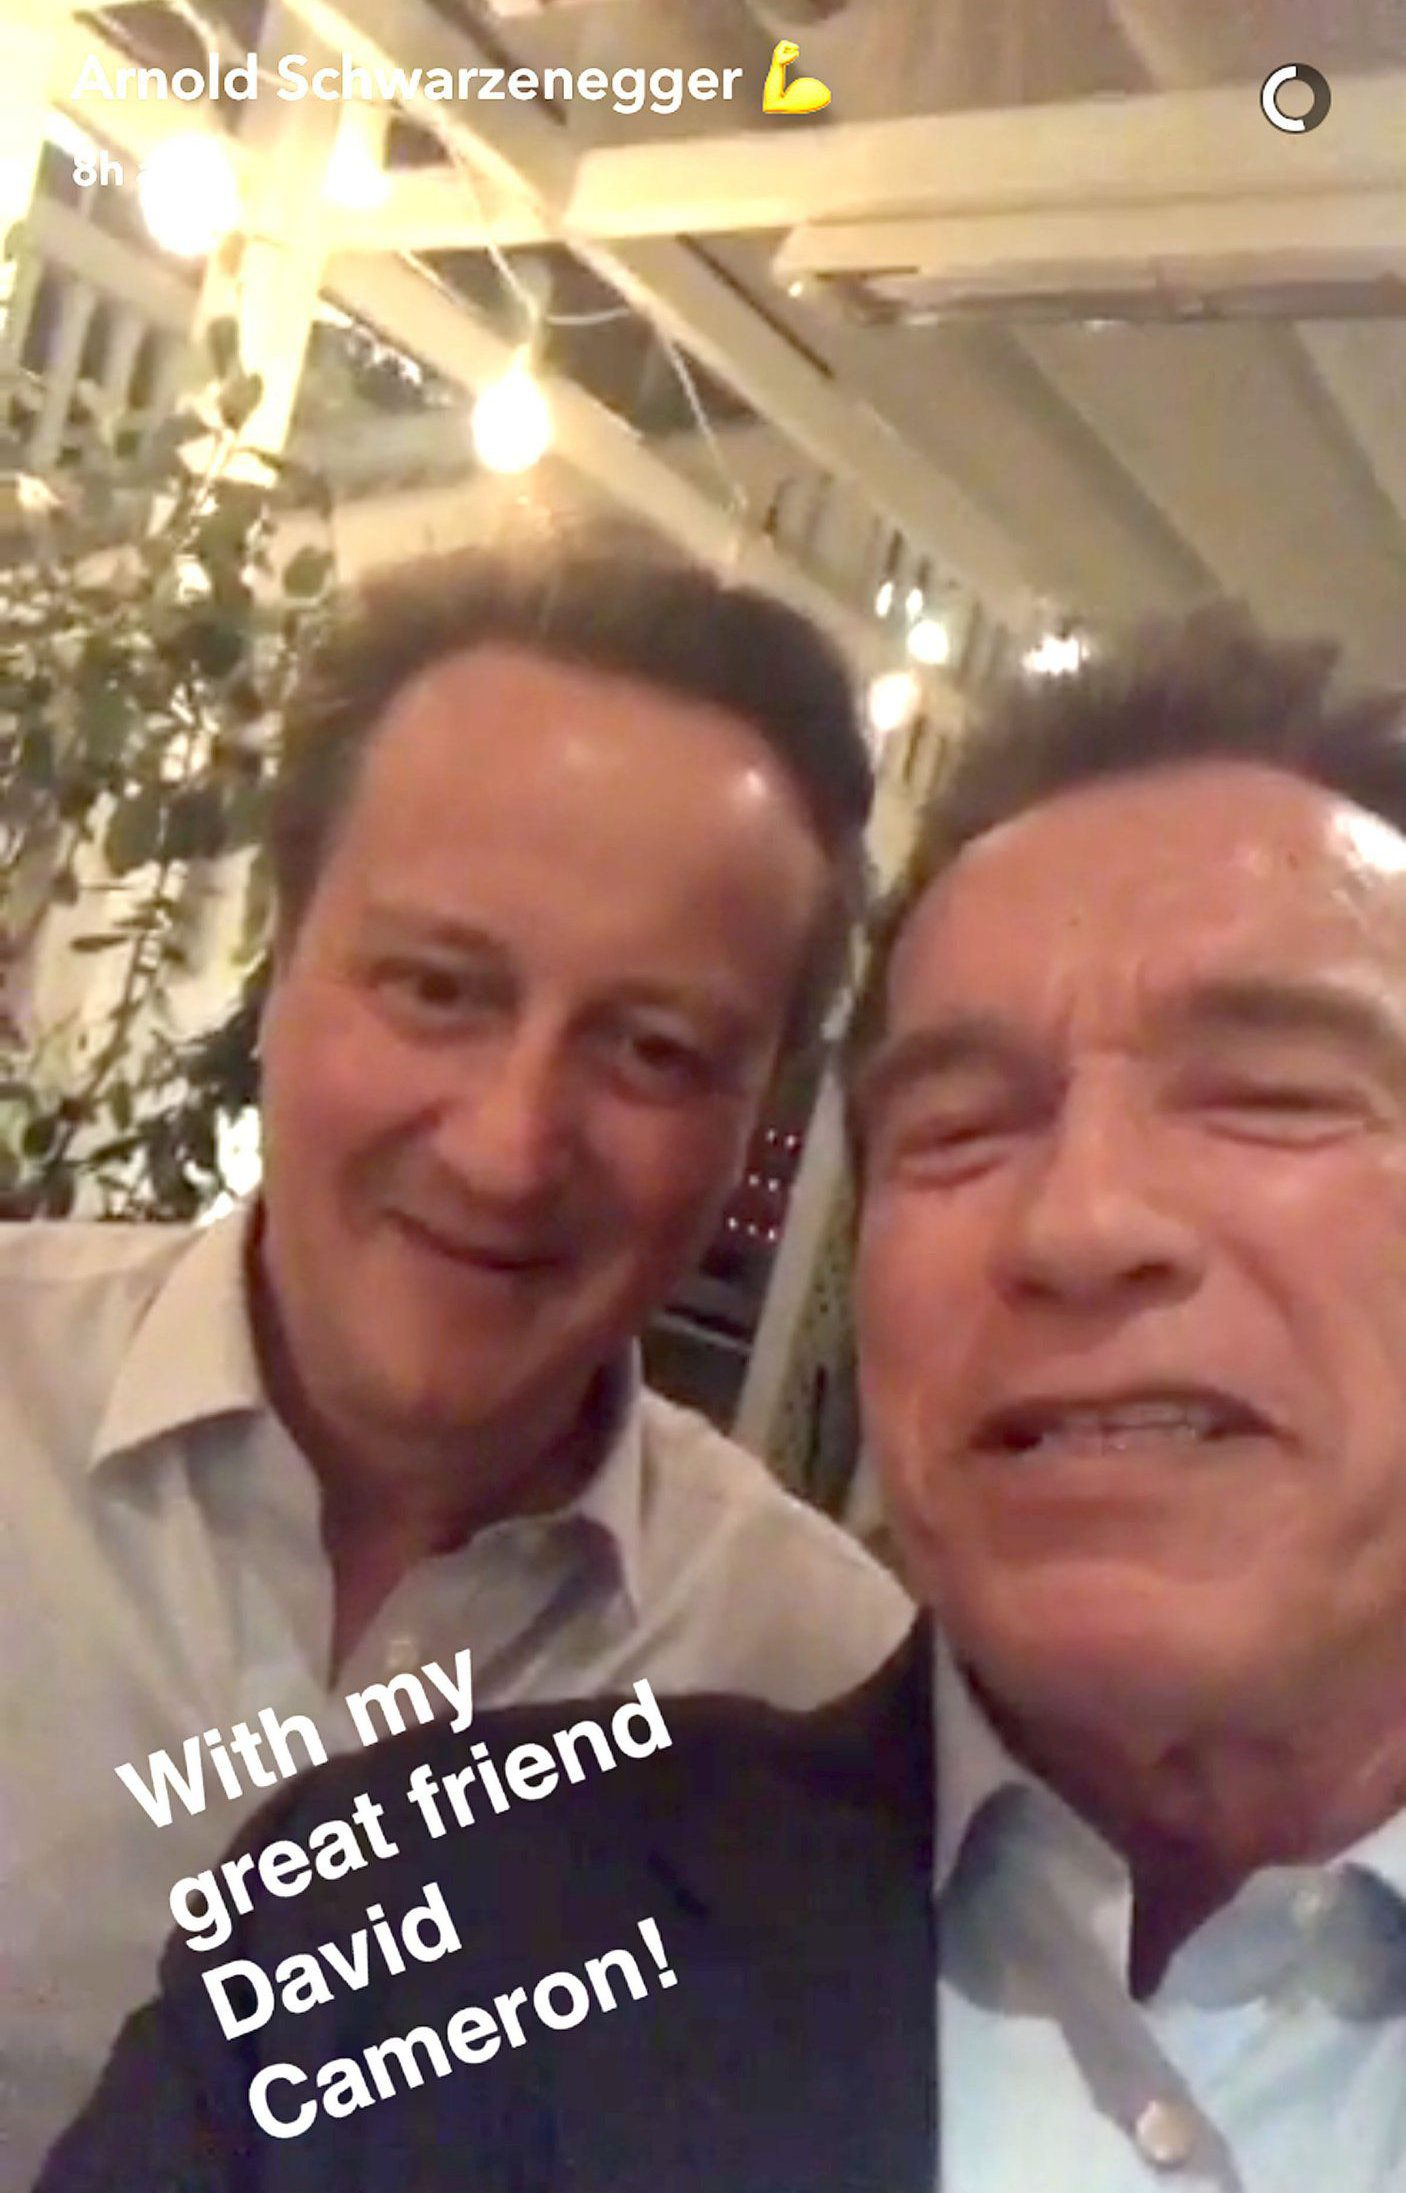 "Undated screengrab taken from Arnold Schwarzeneggerís Snapchat video with David Cameron (left). PRESS ASSOCIATION Photo. Issue date: Friday February 3, 2017. David Cameron promised he will ""be back"" as he channelled Arnold Schwarzenegger's Terminator in a video with the Hollywood star. The pair appeared together in a Snapchat video posted on the actor's account on Friday captioned ""with my great friend David Cameron"". Mr Cameron tells the ex-Republican governor's followers: ""I'm here with the governor, he did a great job and I'll be back."" See PA story SHOWBIZ Cameron. Photo credit should read: Arnold Schwarzenegger/PA Wire NOTE TO EDITORS: This handout photo may only be used in for editorial reporting purposes for the contemporaneous illustration of events, things or the people in the image or facts mentioned in the caption. Reuse of the picture may require further permission from the copyright holder."